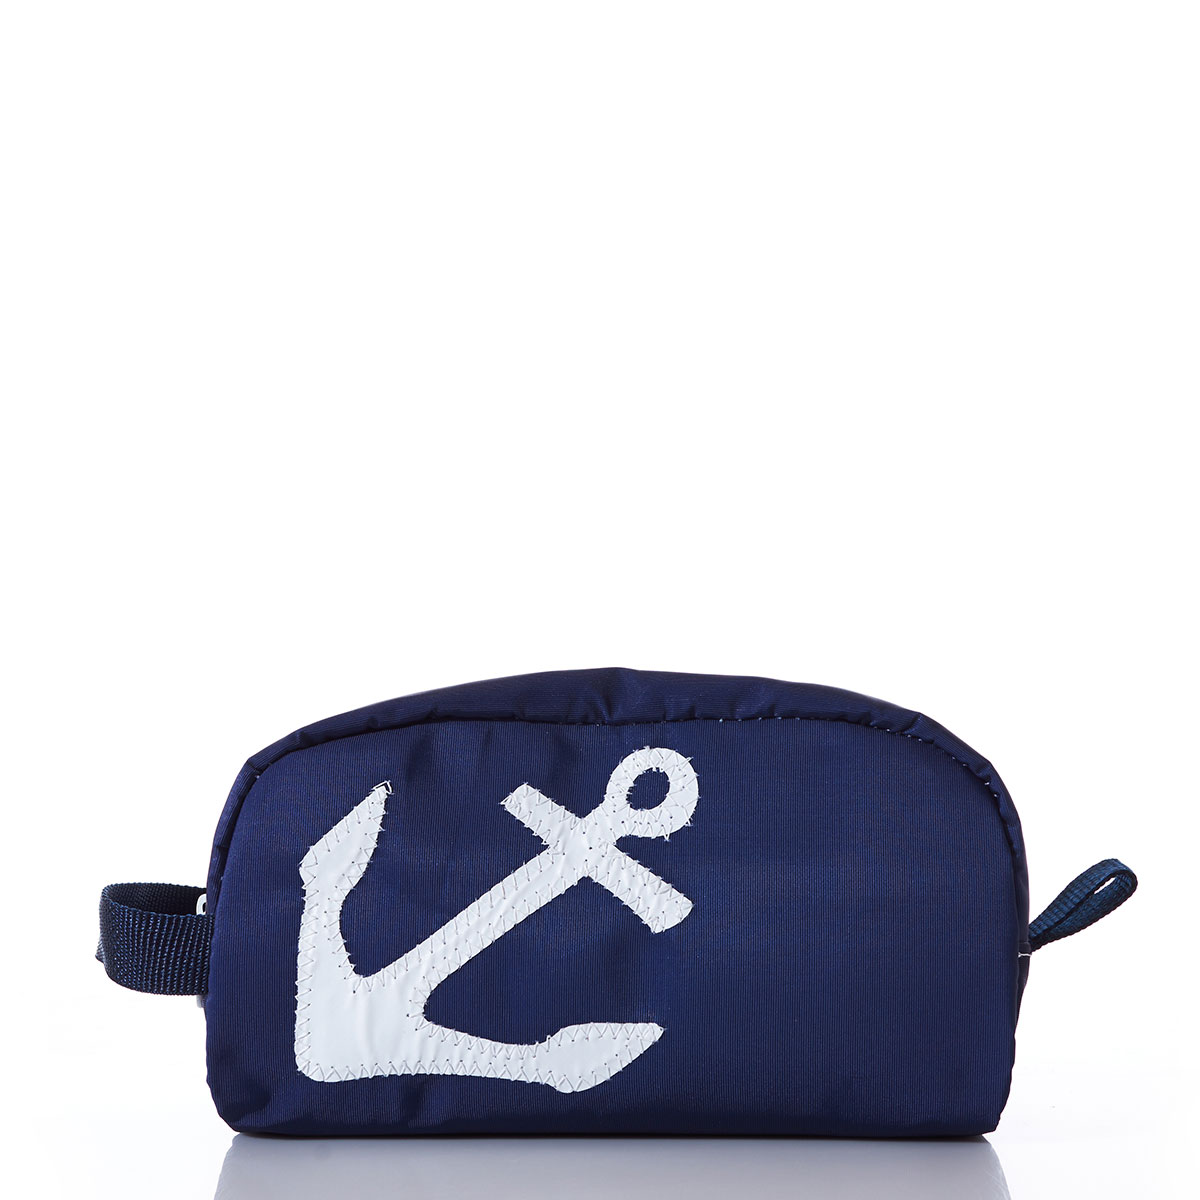 White-on-Navy Anchor Toiletry Bag